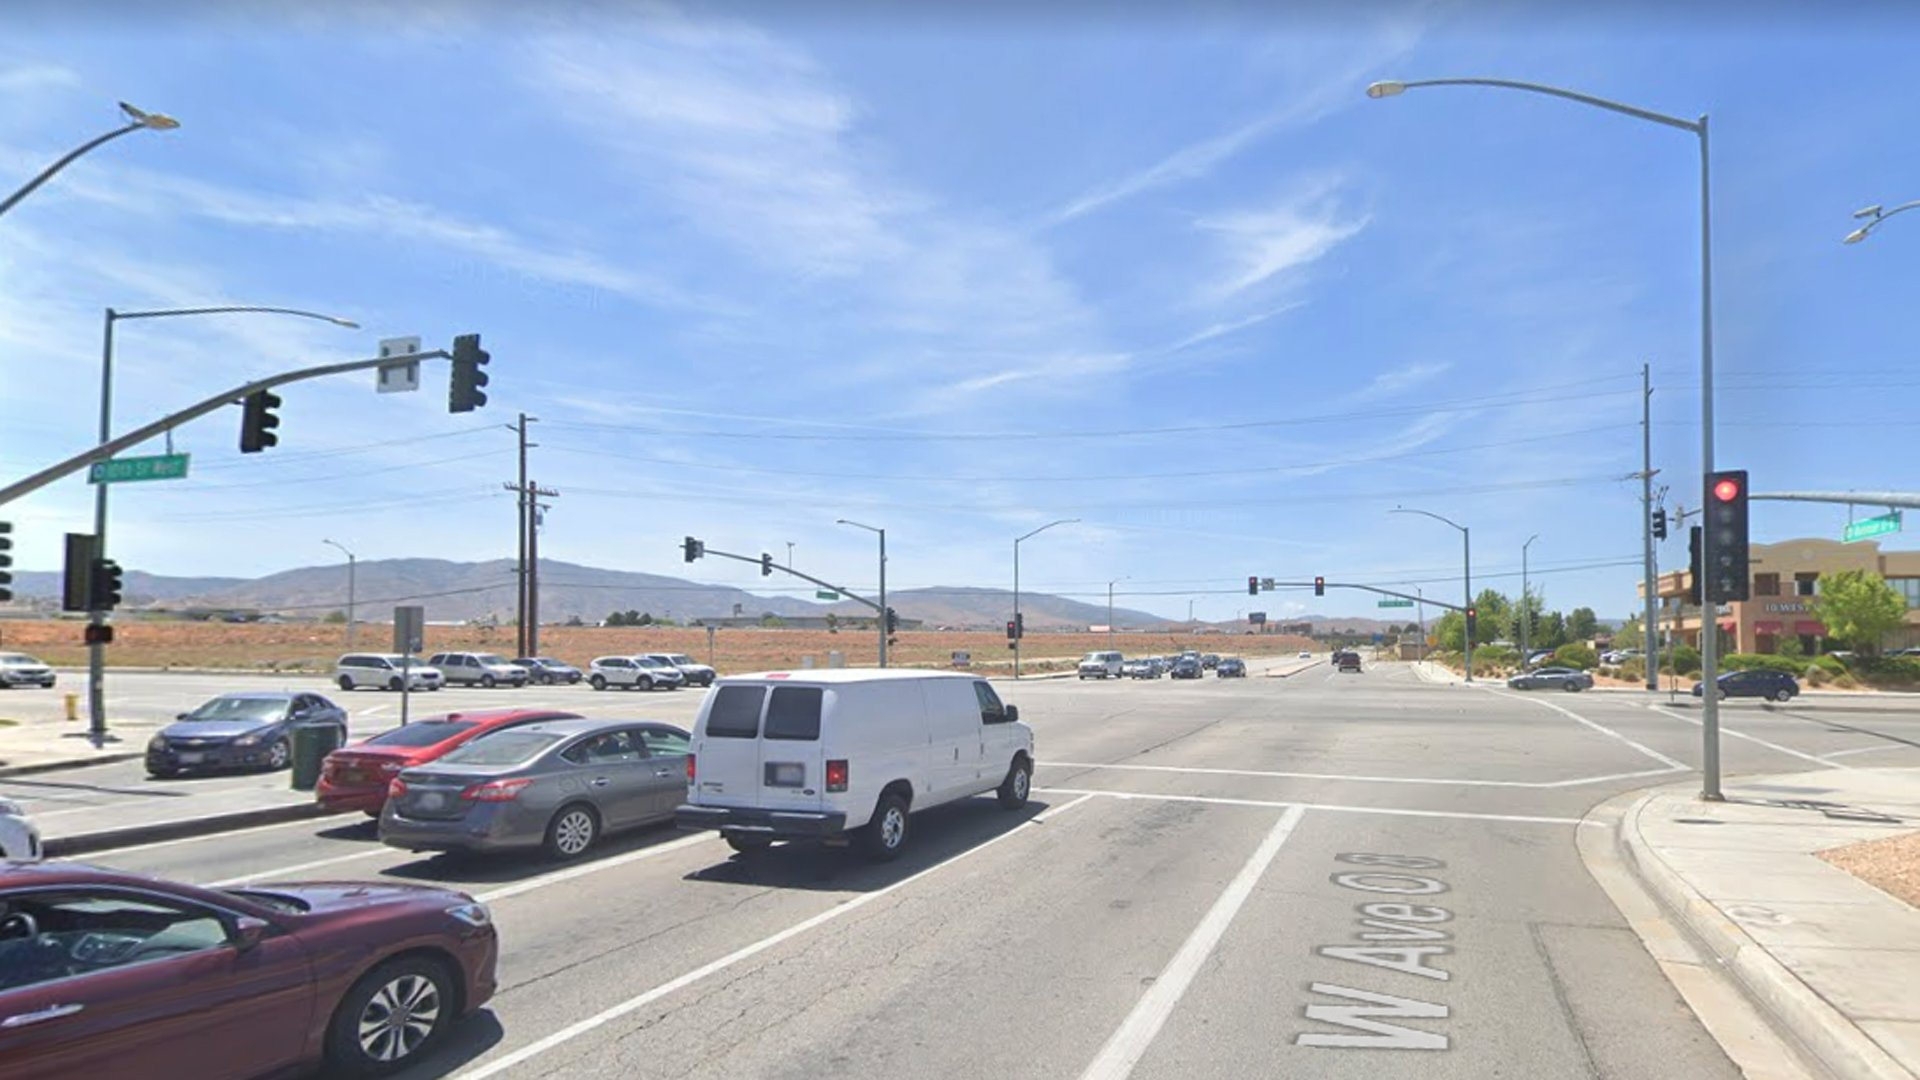 The intersection of 10th Street and Avenue O-8 in Palmdale, as pictured in a Google Street View image.